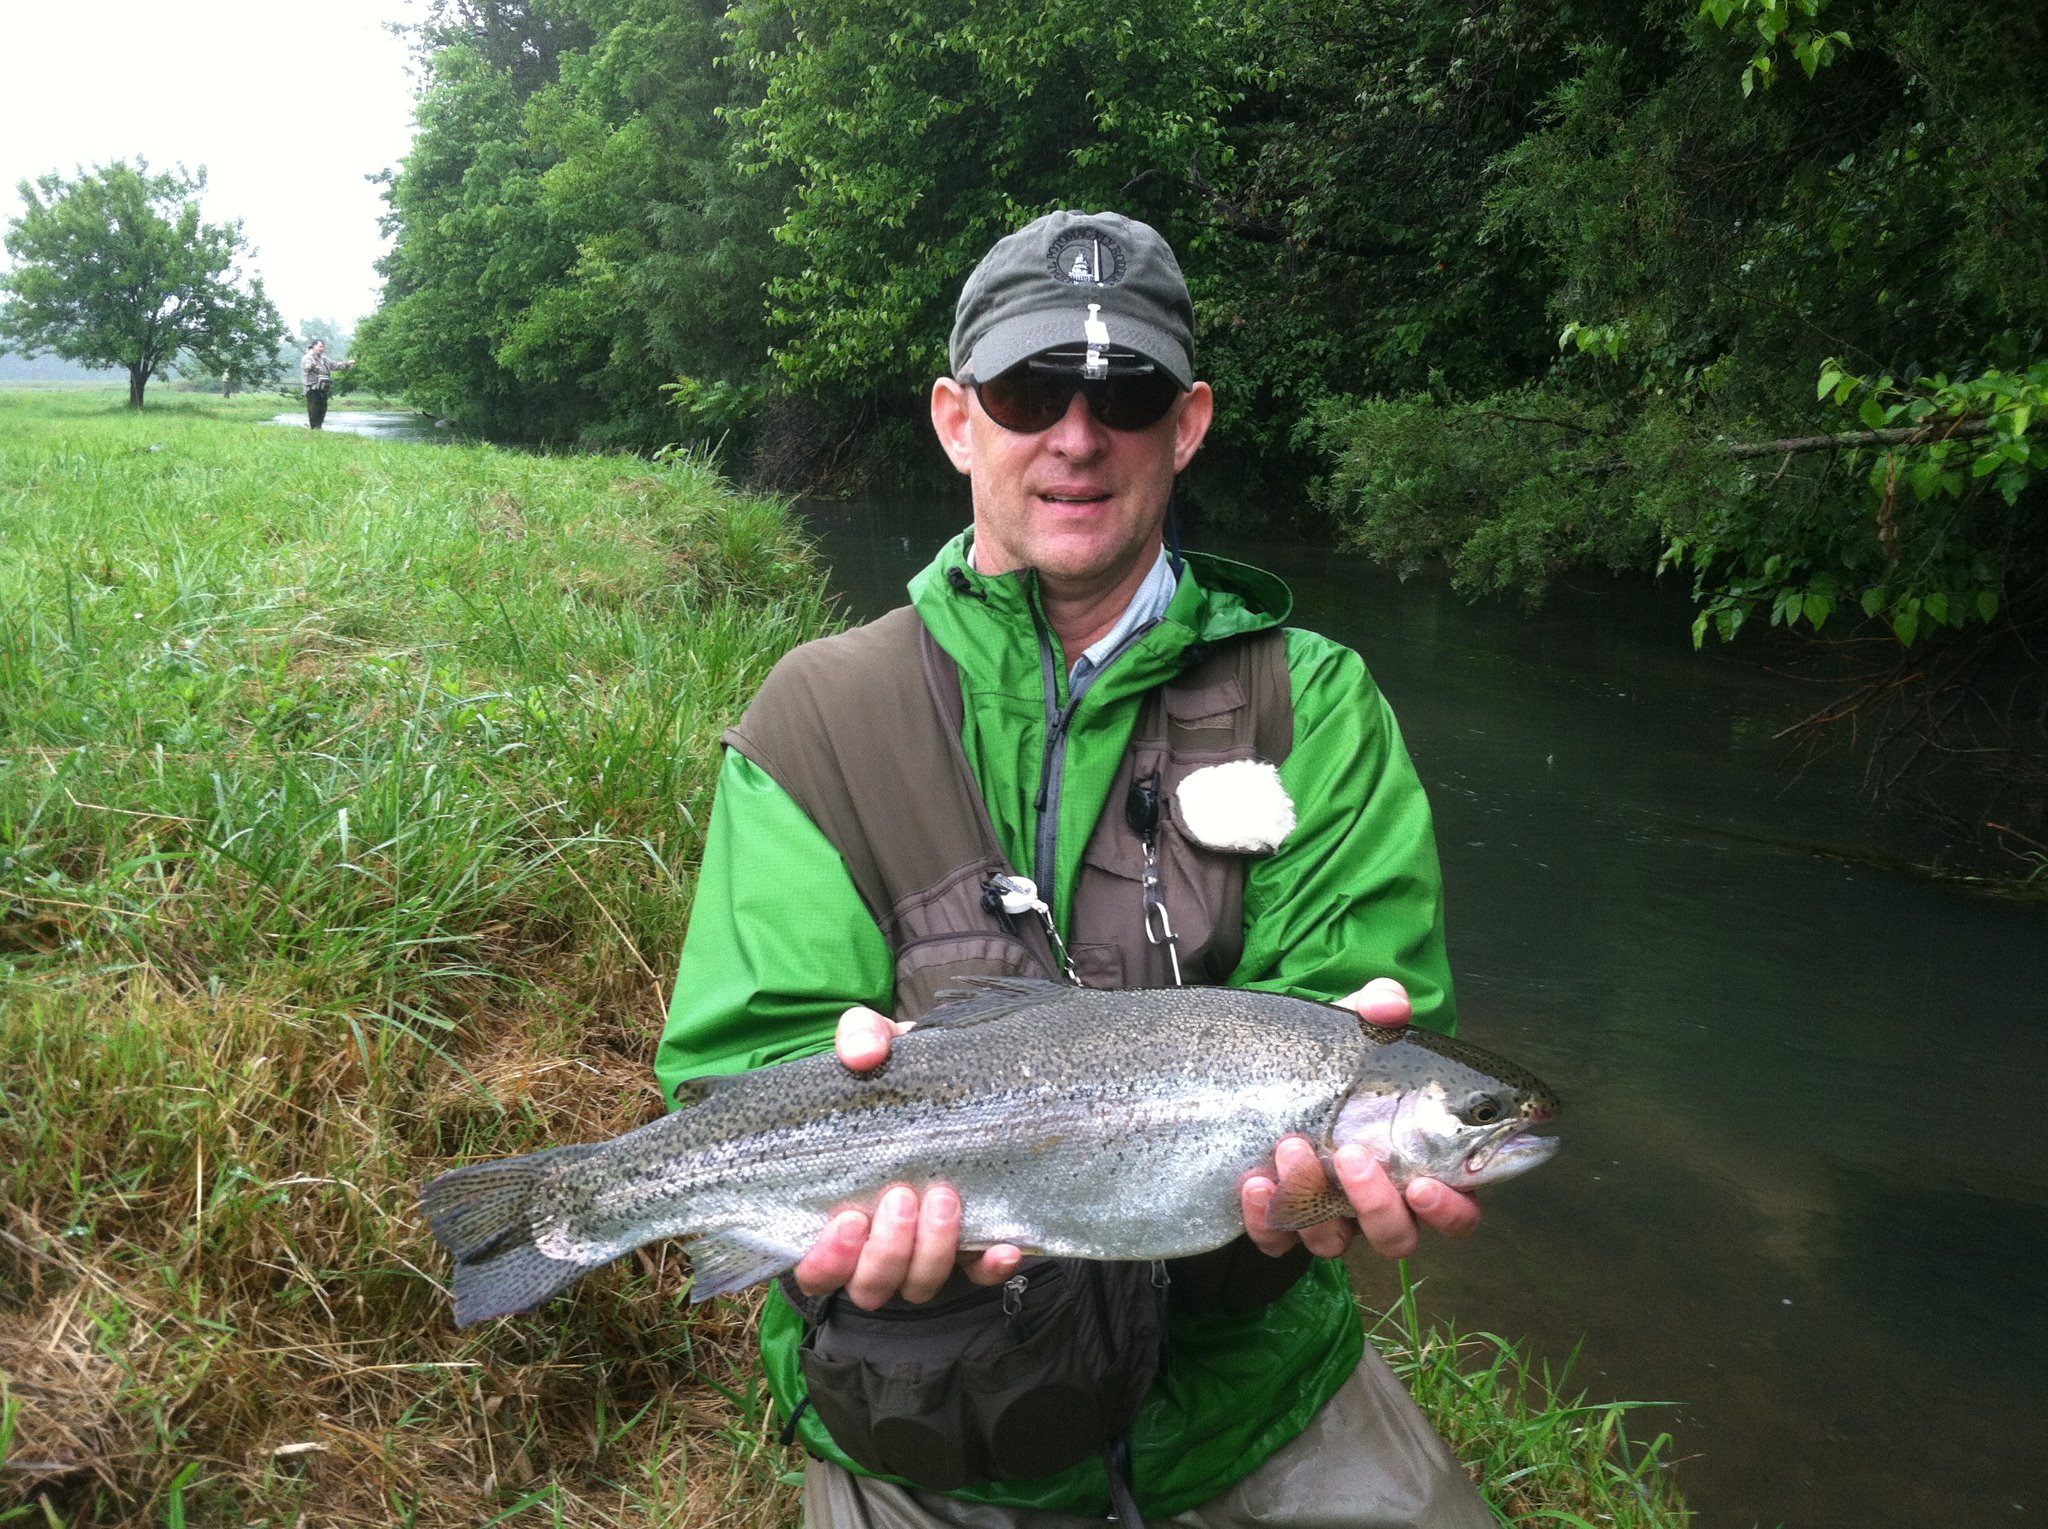 Destination virginia fly fishing for massive musky trout for Shenandoah national park fishing